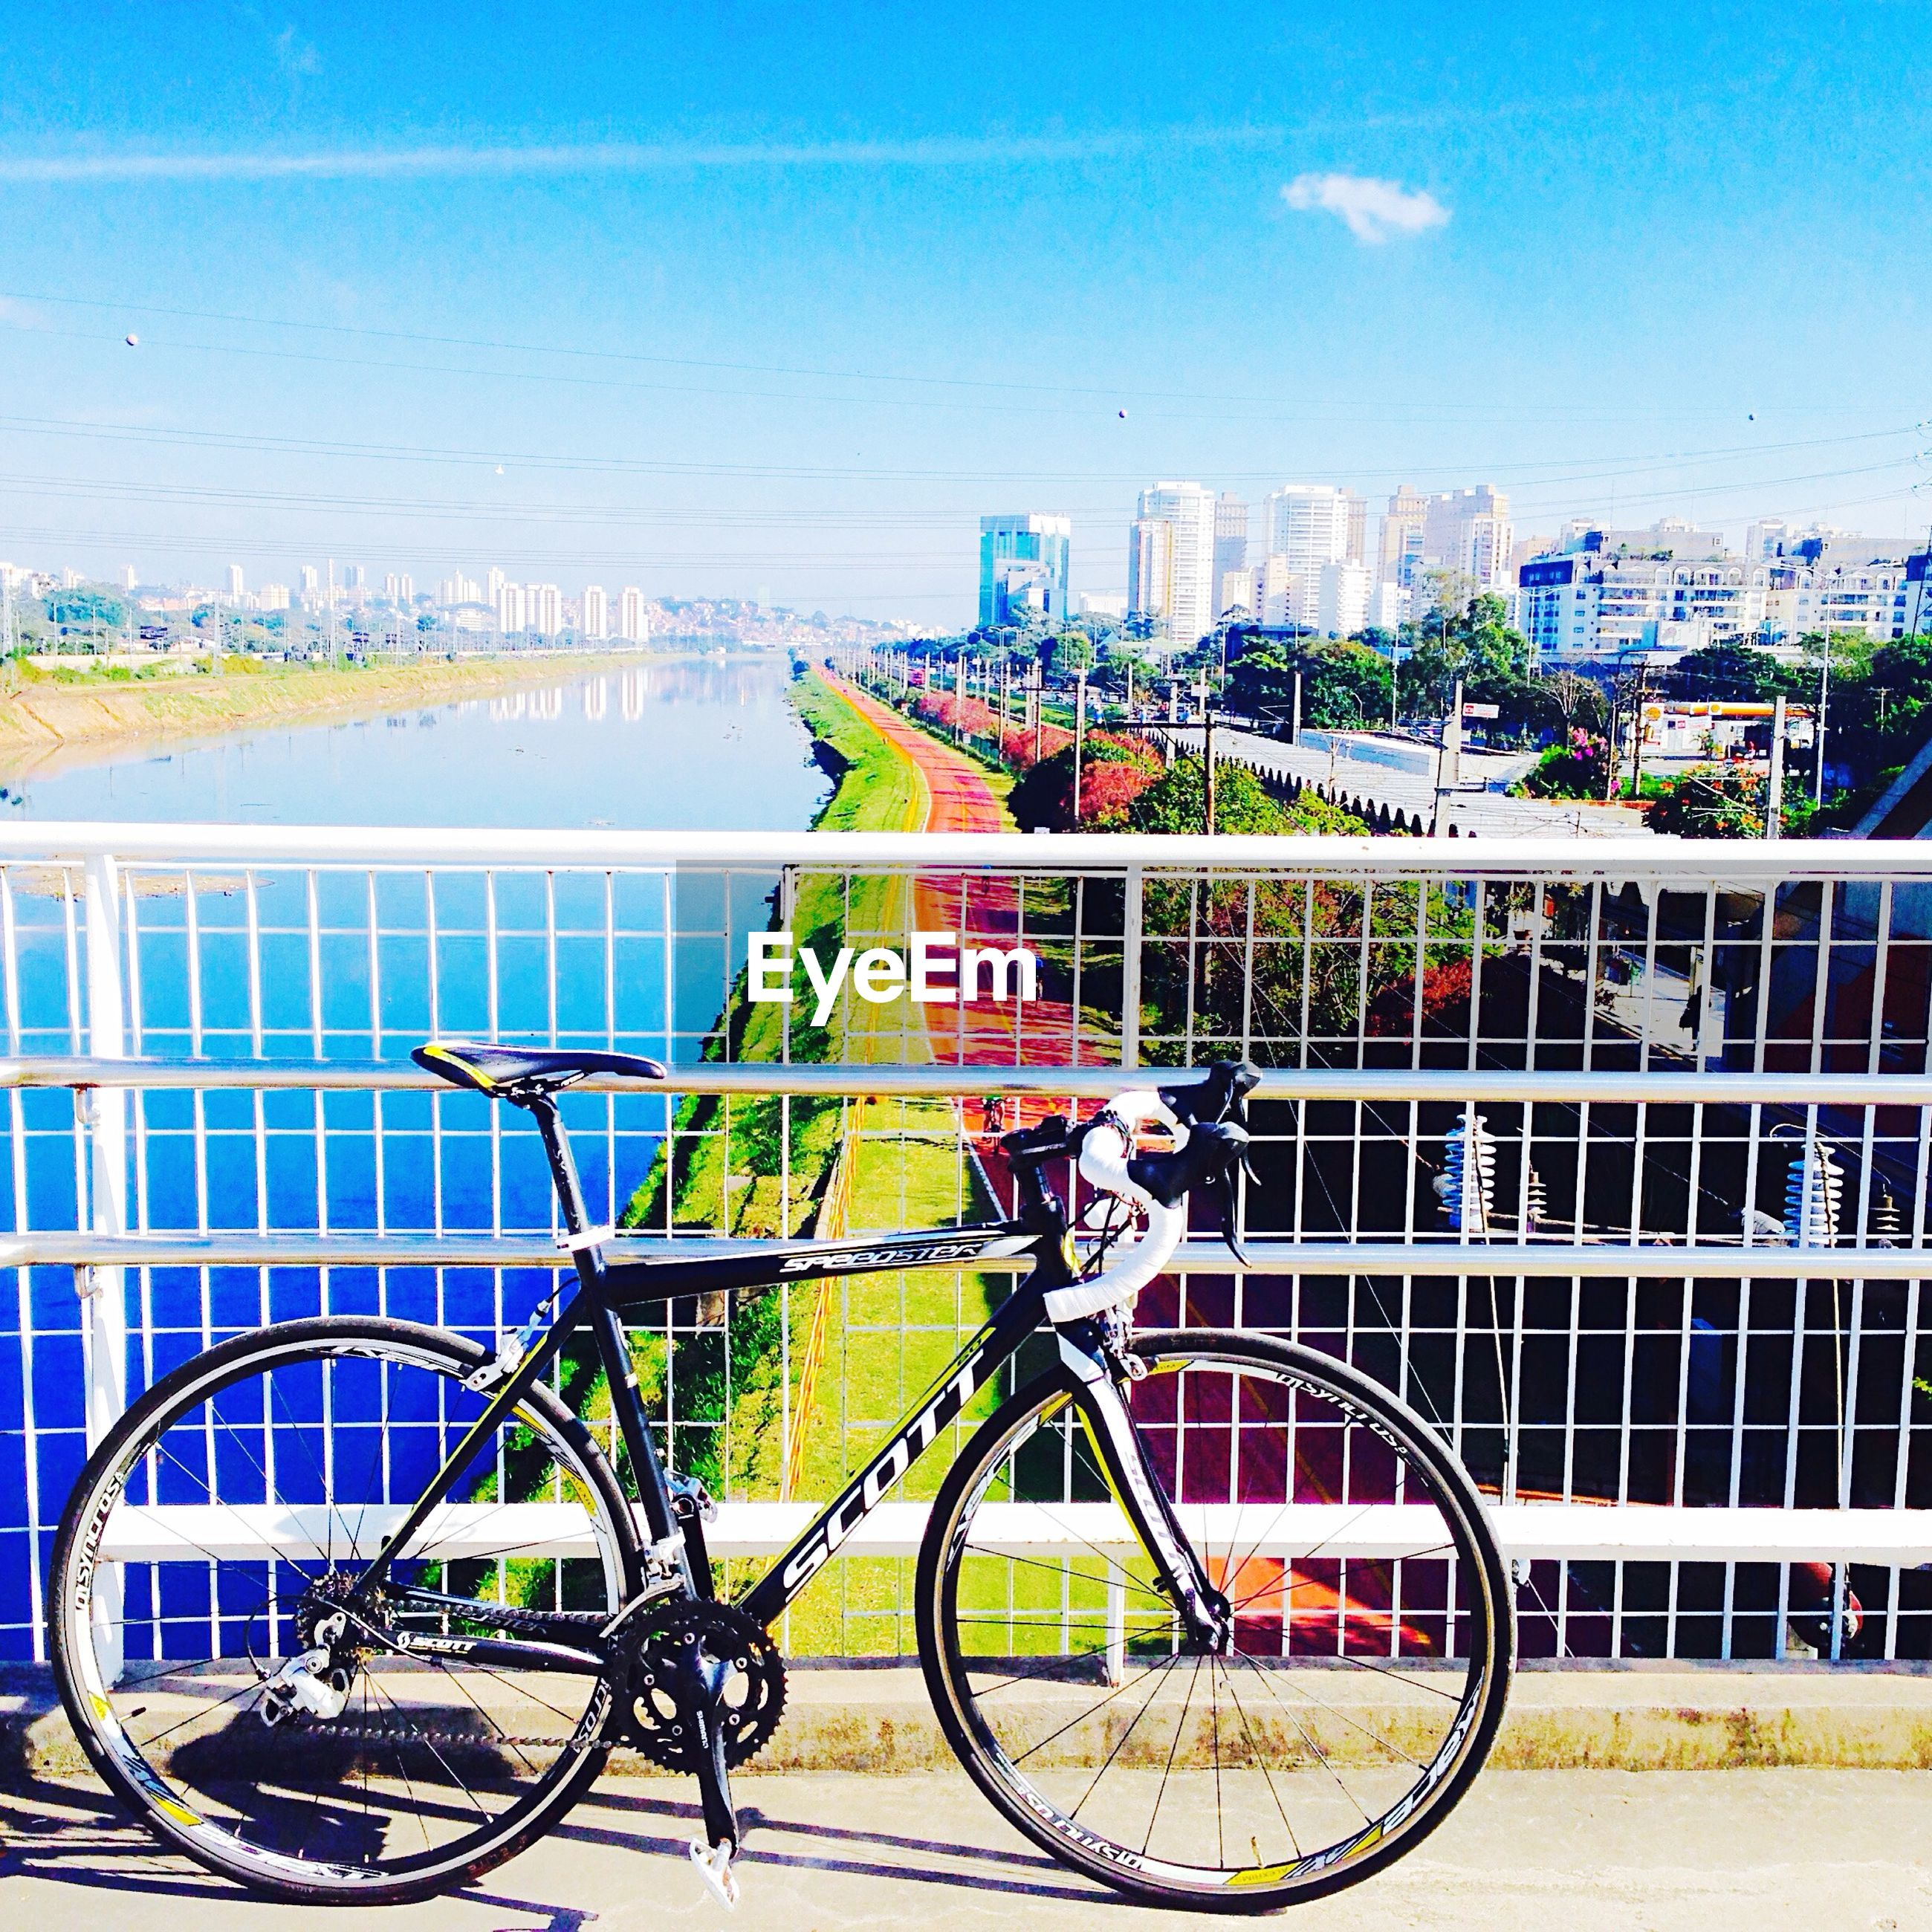 bicycle, transportation, mode of transport, stationary, railing, land vehicle, parking, parked, built structure, architecture, building exterior, sky, water, city, day, blue, outdoors, river, parking lot, no people